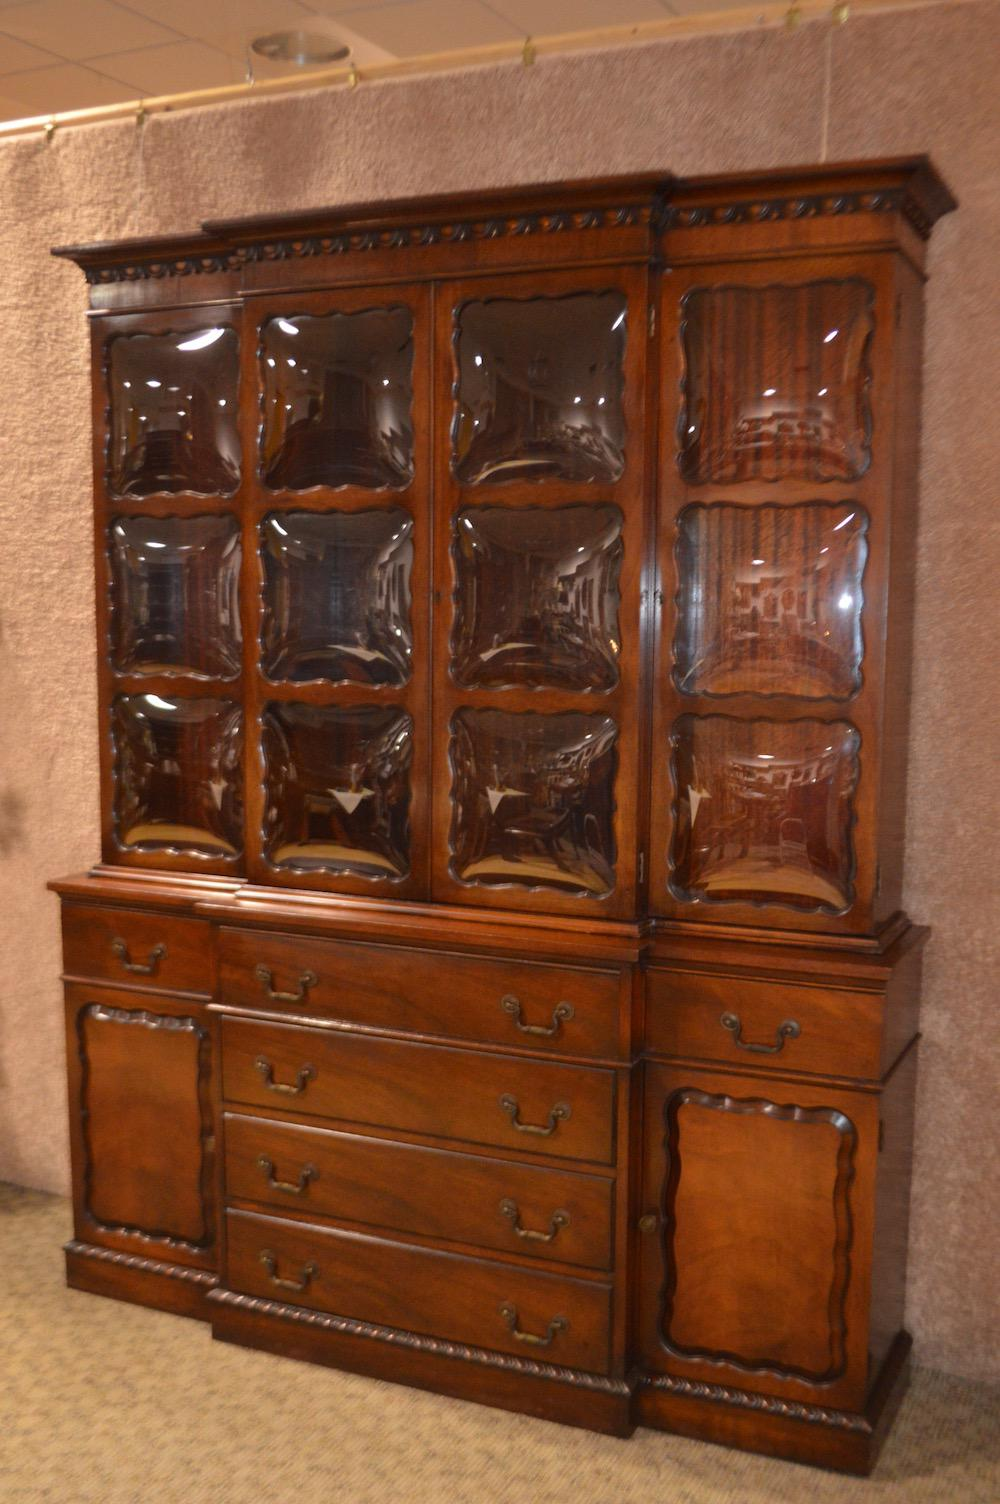 Beau Vintage Two Piece Mahogany Regency Style Bubble Glass China Cabinet For  Sale   Image 4 Of